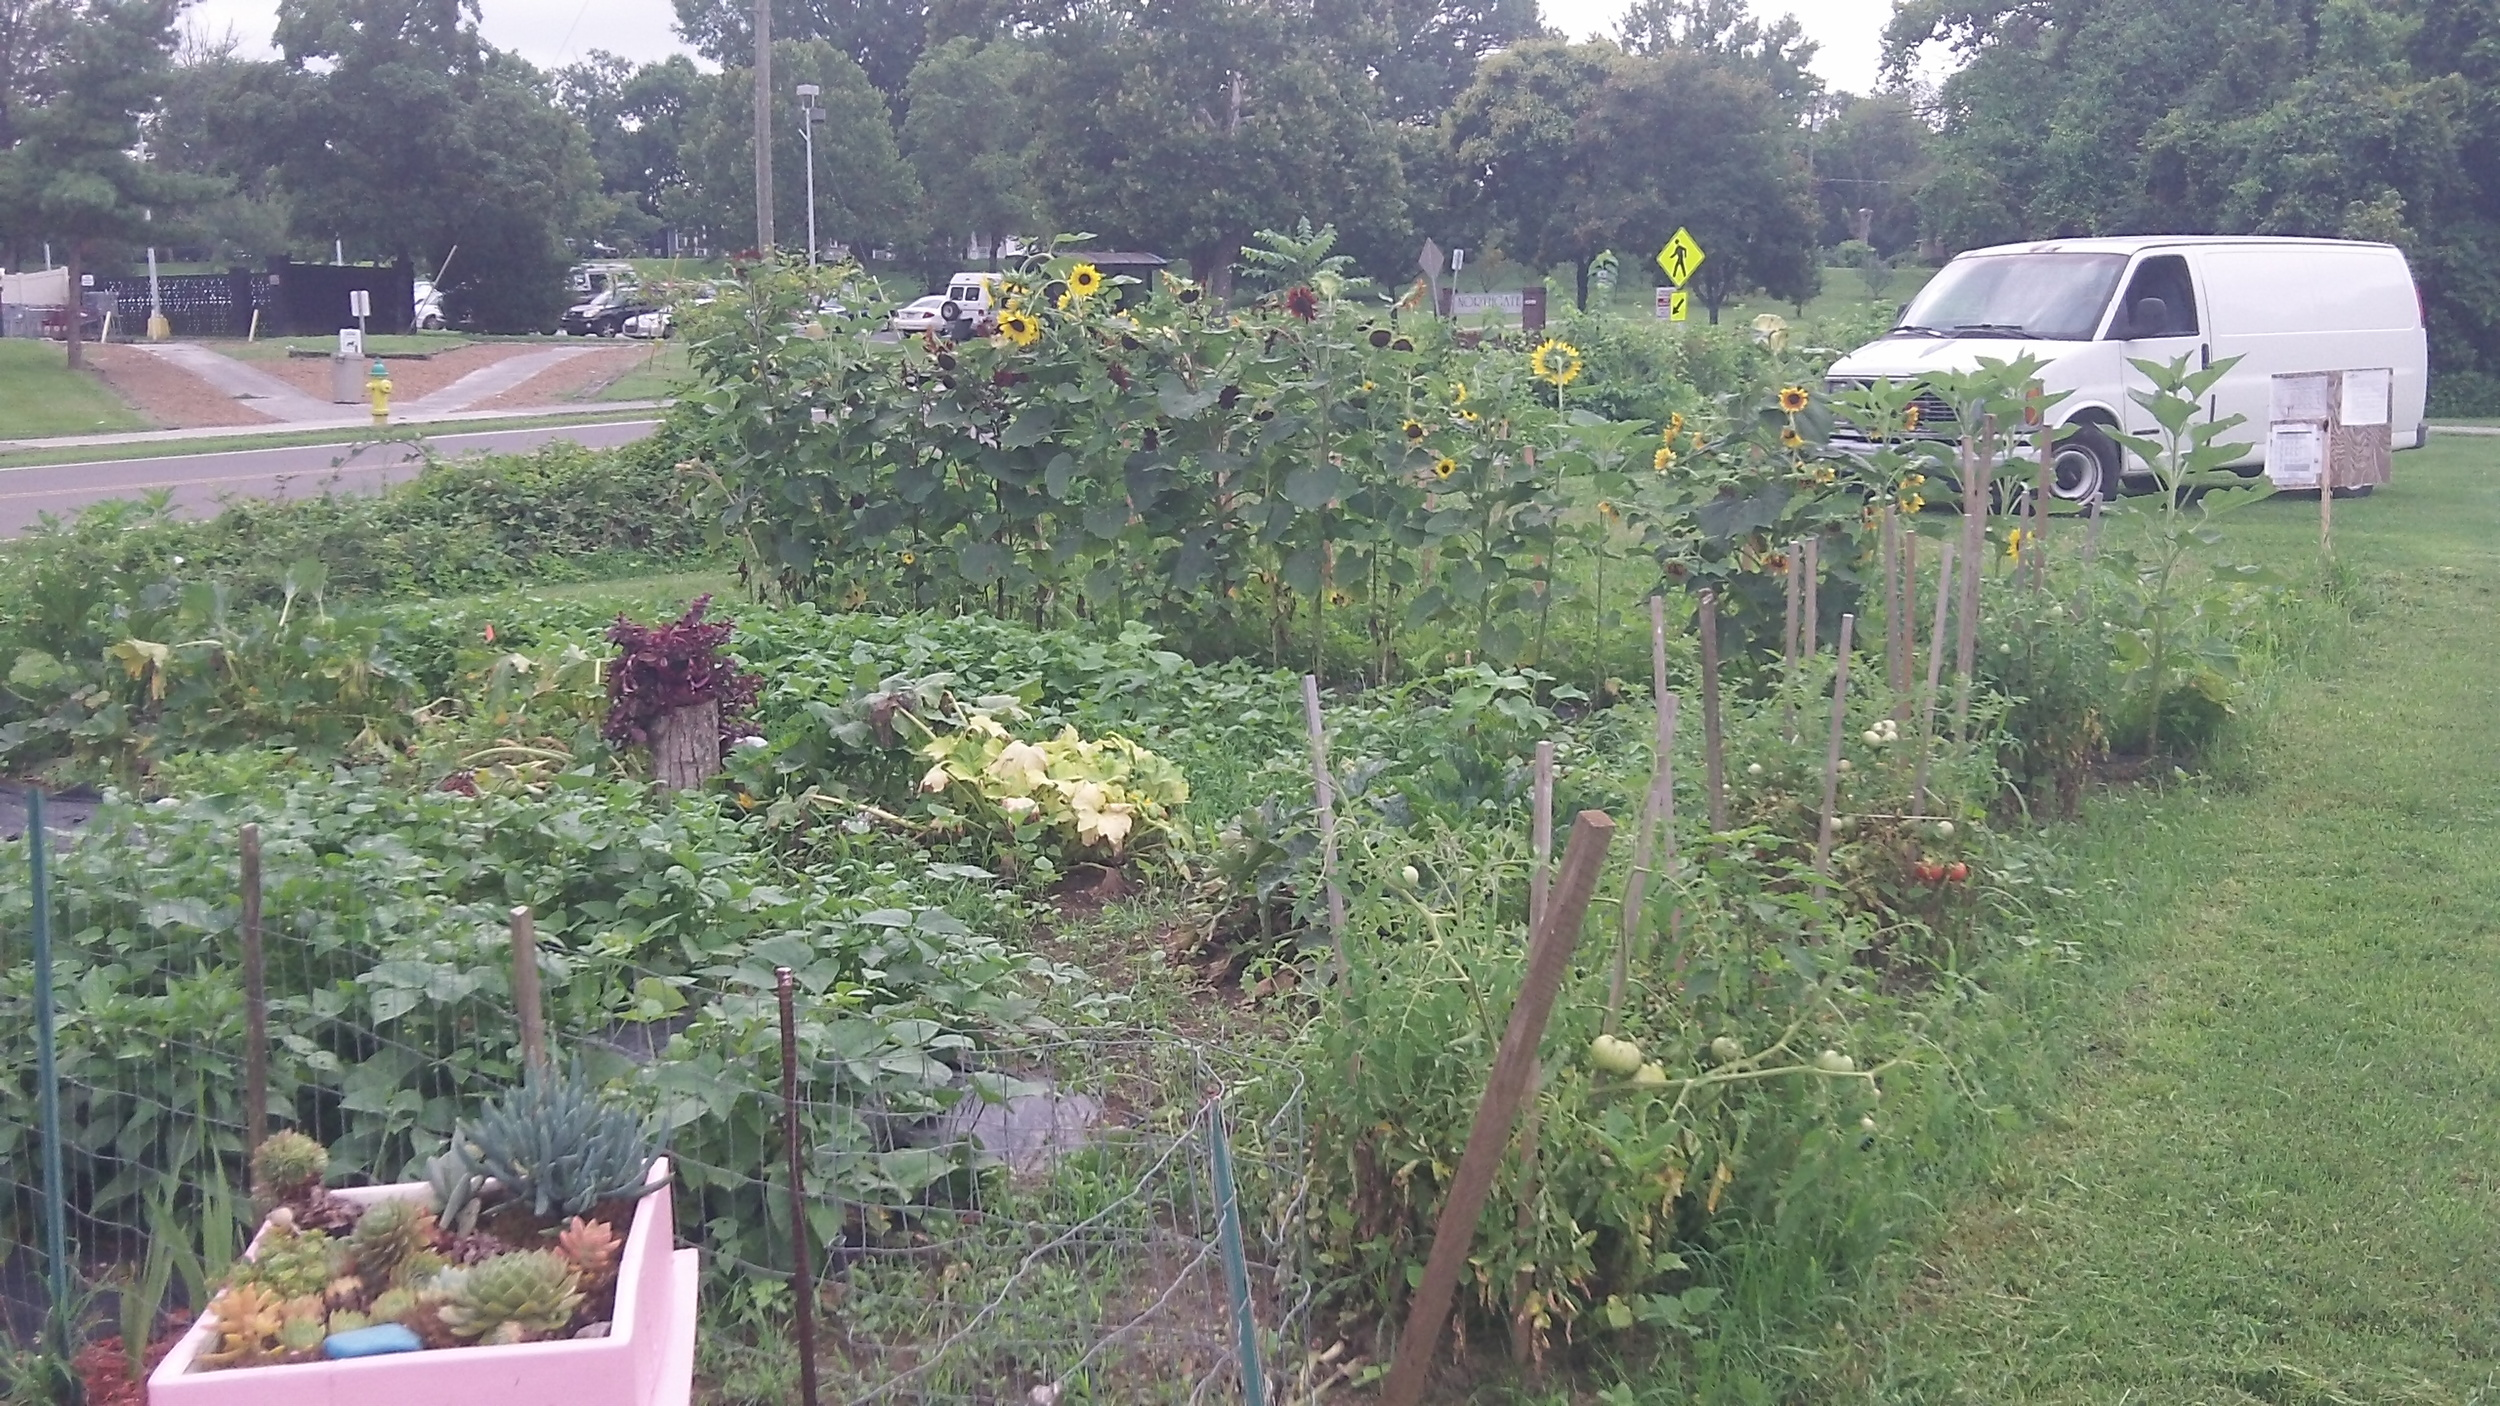 IMAGE DESCRIPTION:  A lush community garden filled with a variety of plants and vegetables.